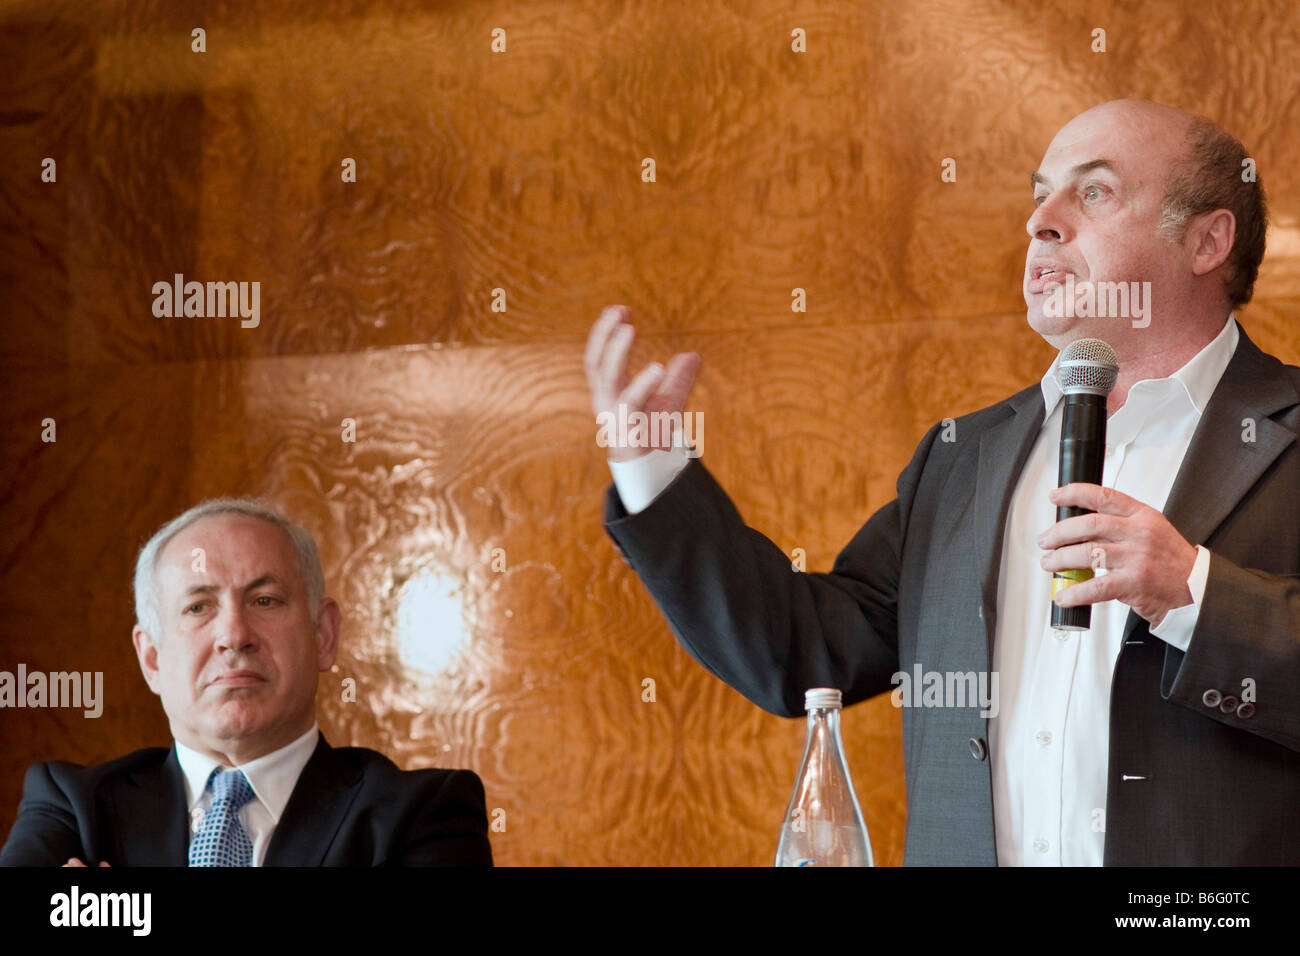 Former Israeli PM Binyamin Netanyahu and Nathan Sharansky during Adelson Institute's Dec. 2008 Counterinsurgency Stock Photo